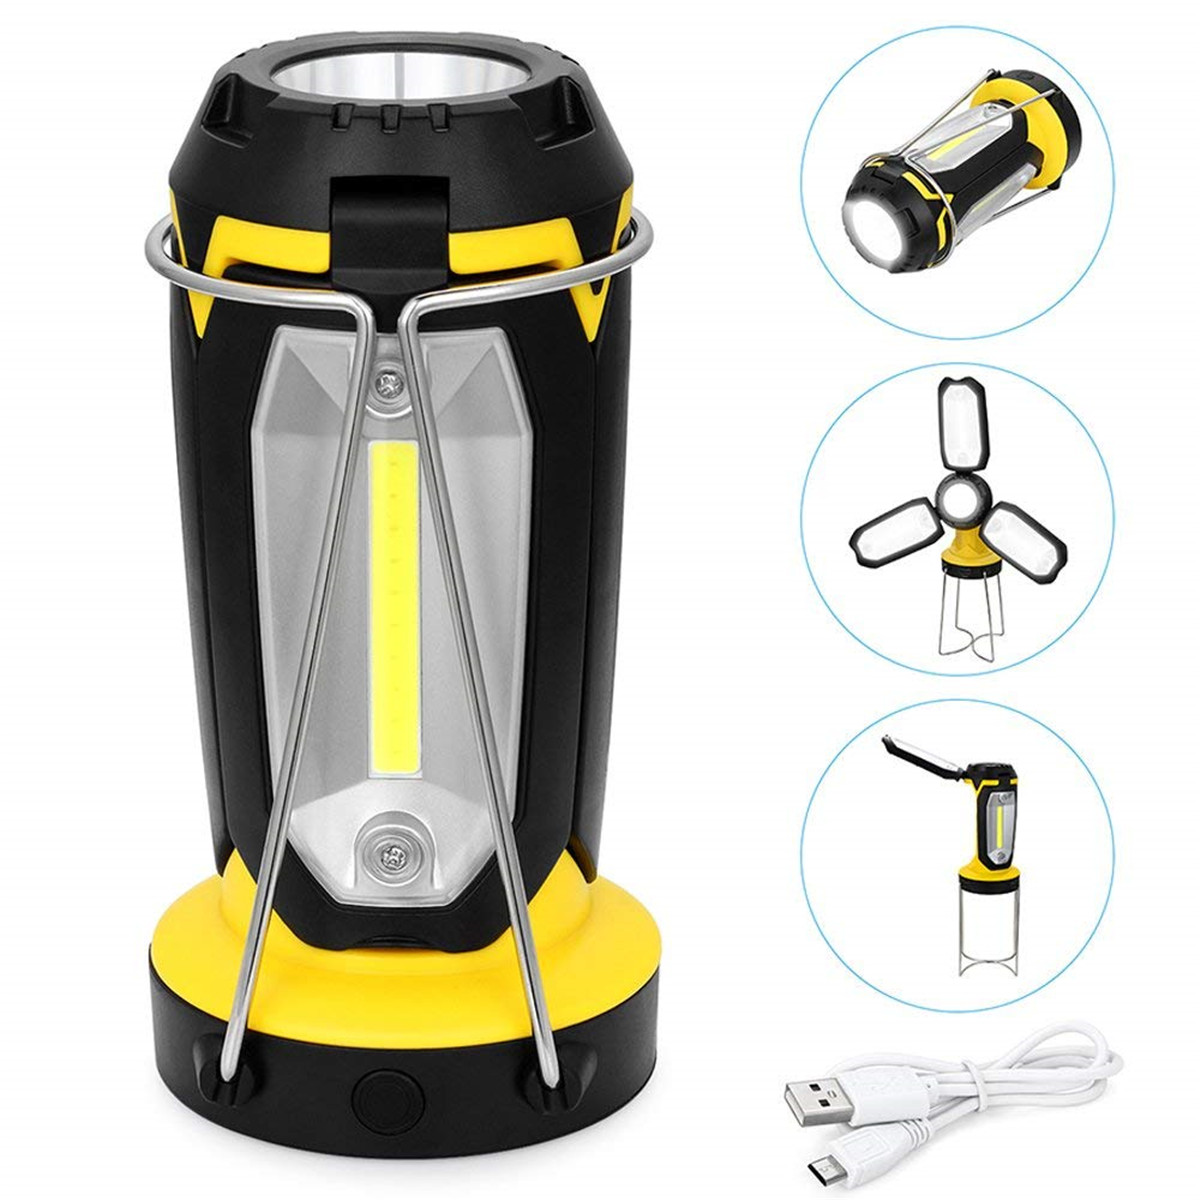 COB Portable LED Camping Light USB Rechargeable Ultra Bright Lightweight Camping Lanterns Waterproof Searchlight Emergency Lamp